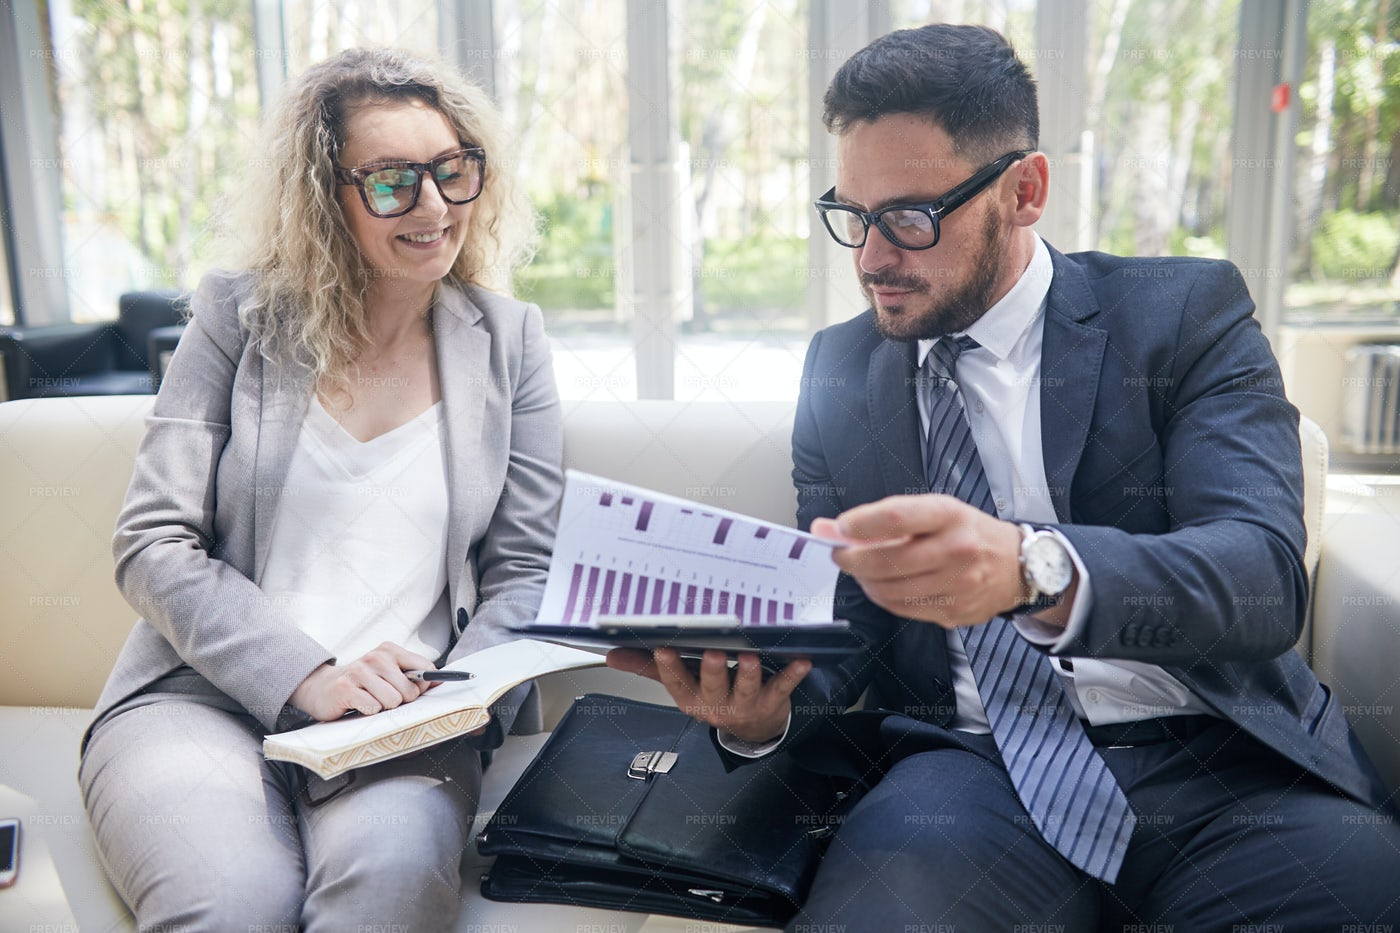 Working Meeting Of Colleagues: Stock Photos